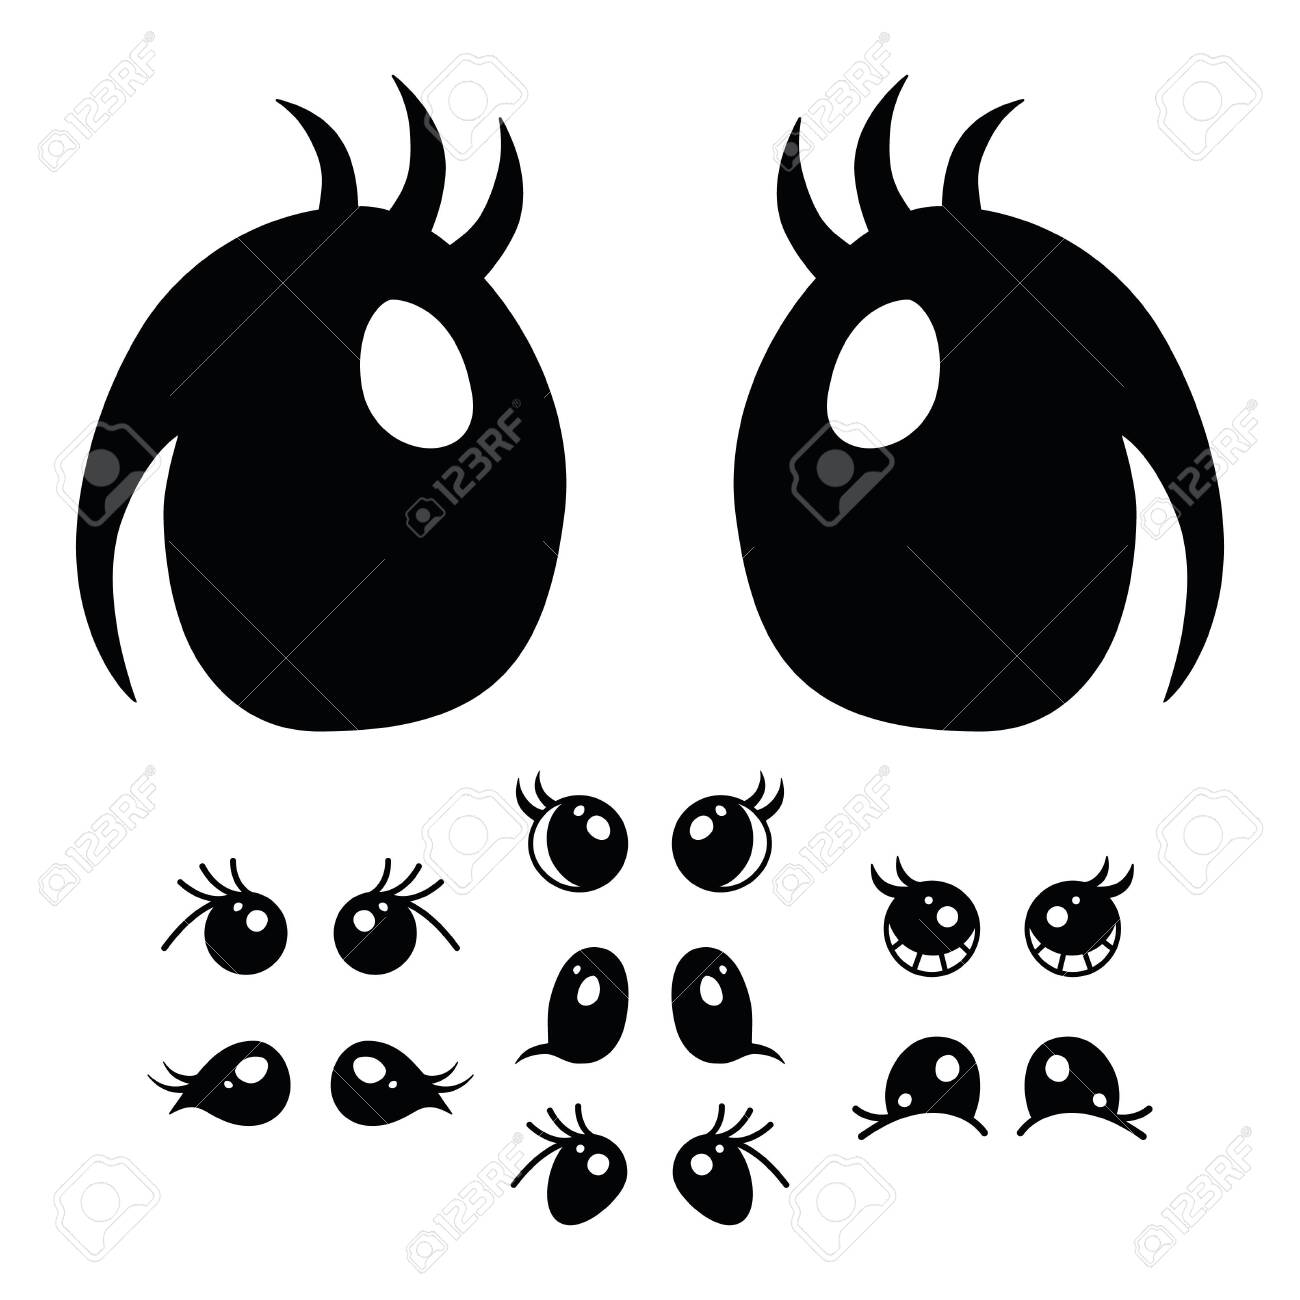 Free Animal Character Cliparts, Download Free Clip Art, Free Clip Art on  Clipart Library